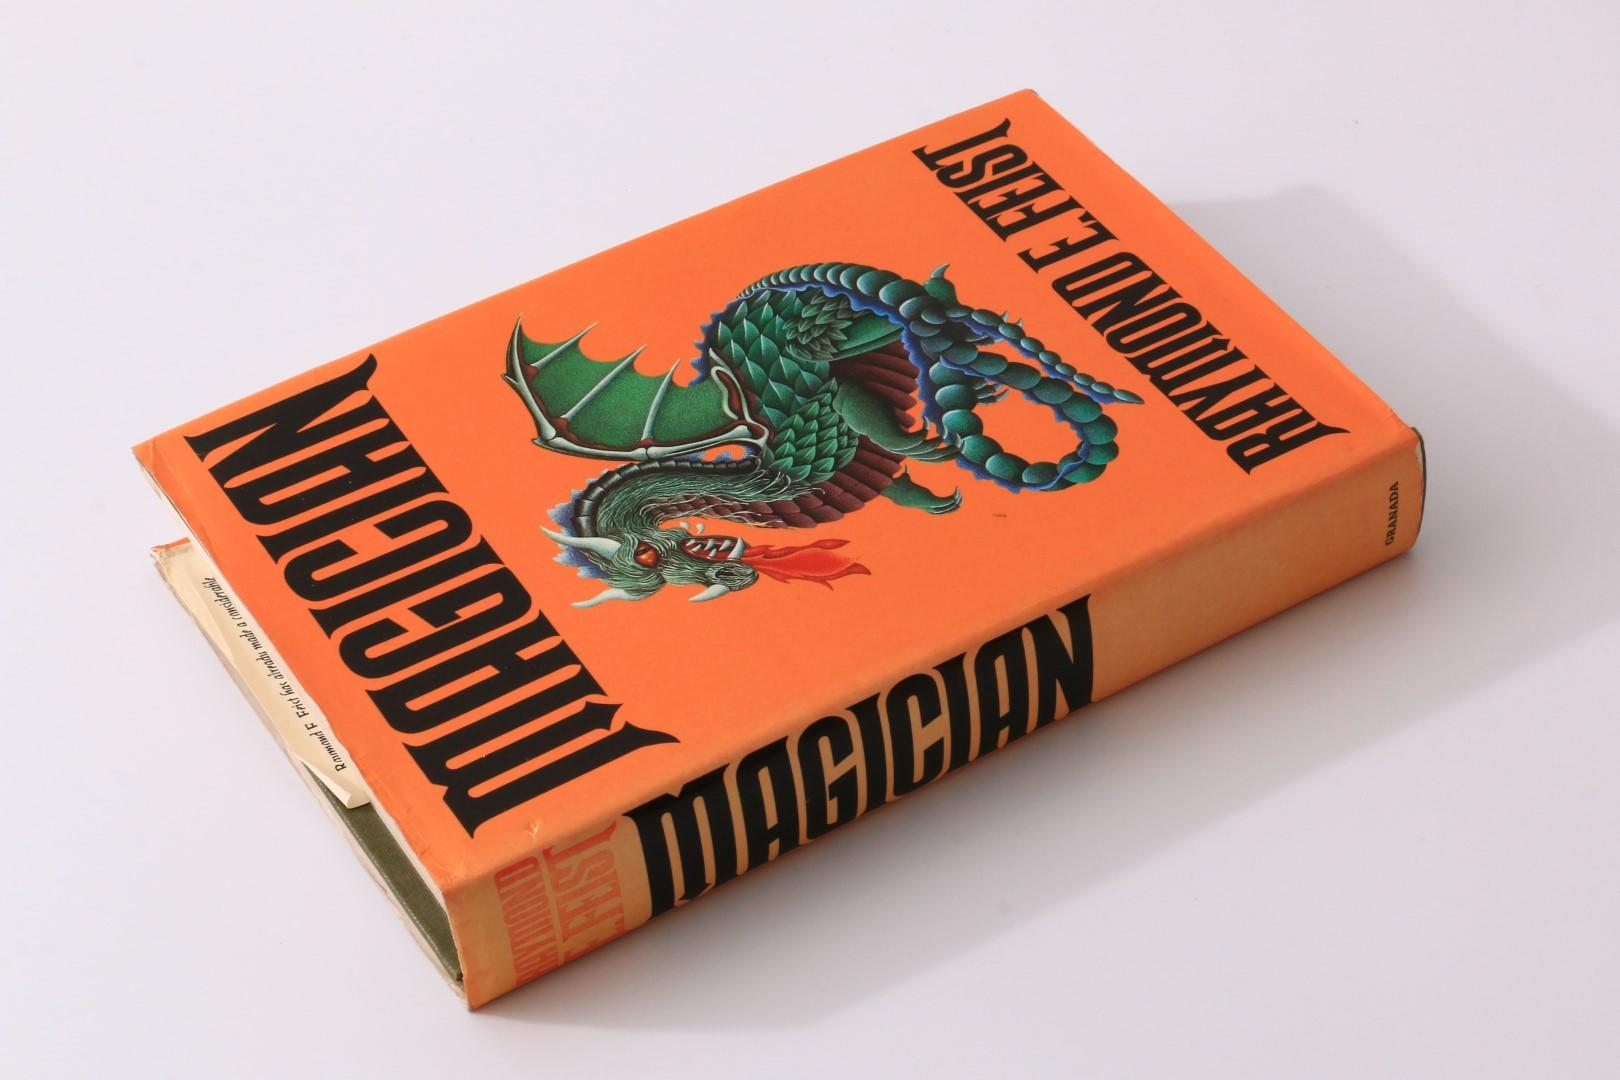 Raymond E. Feist - Magician - Granada, 1983, First Edition.